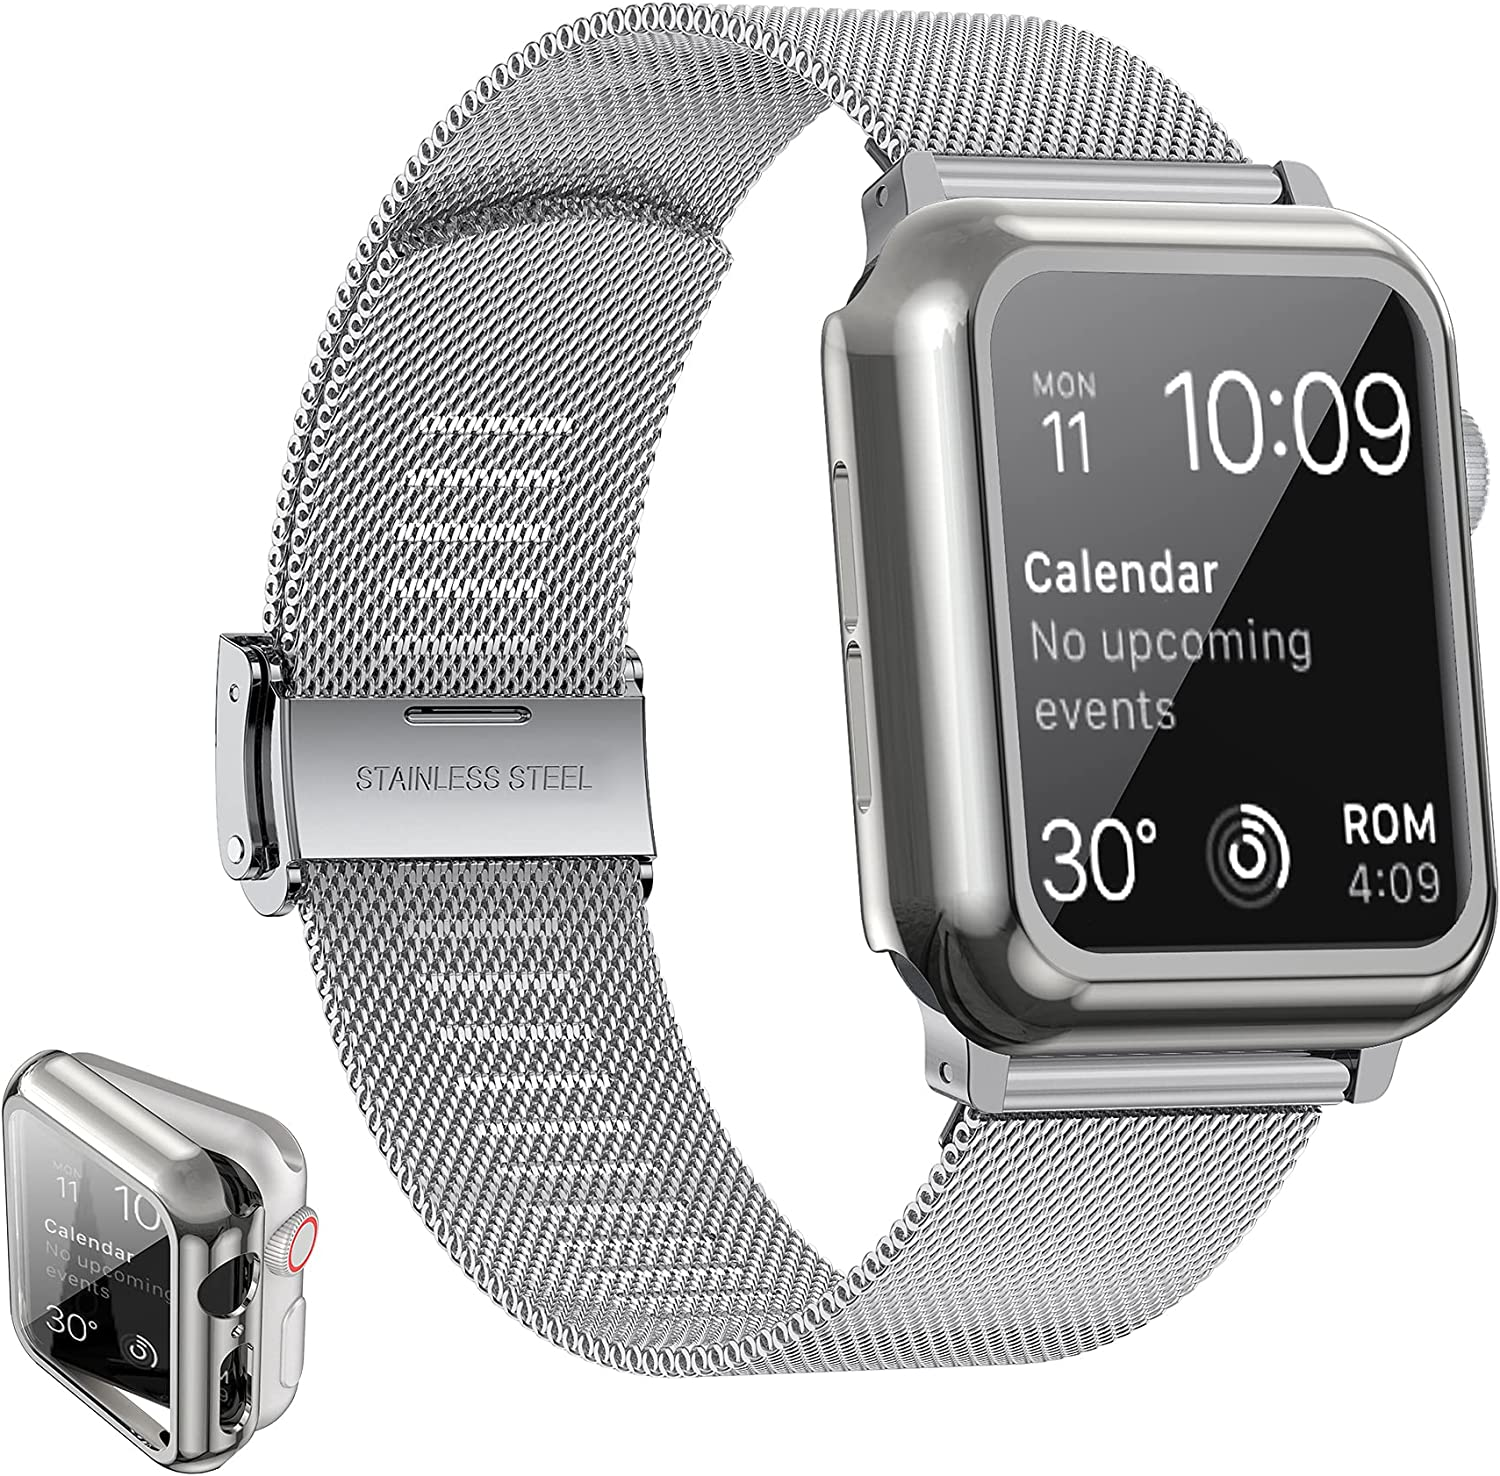 Girovo Compatible with Apple Watch Band 40mm Women Men, Stainless Steel Mesh iWatch Bands with Screen Protector Case Cover Accessories for Apple Watch Bands Series 6/SE/Series 5/Series 4, Silver